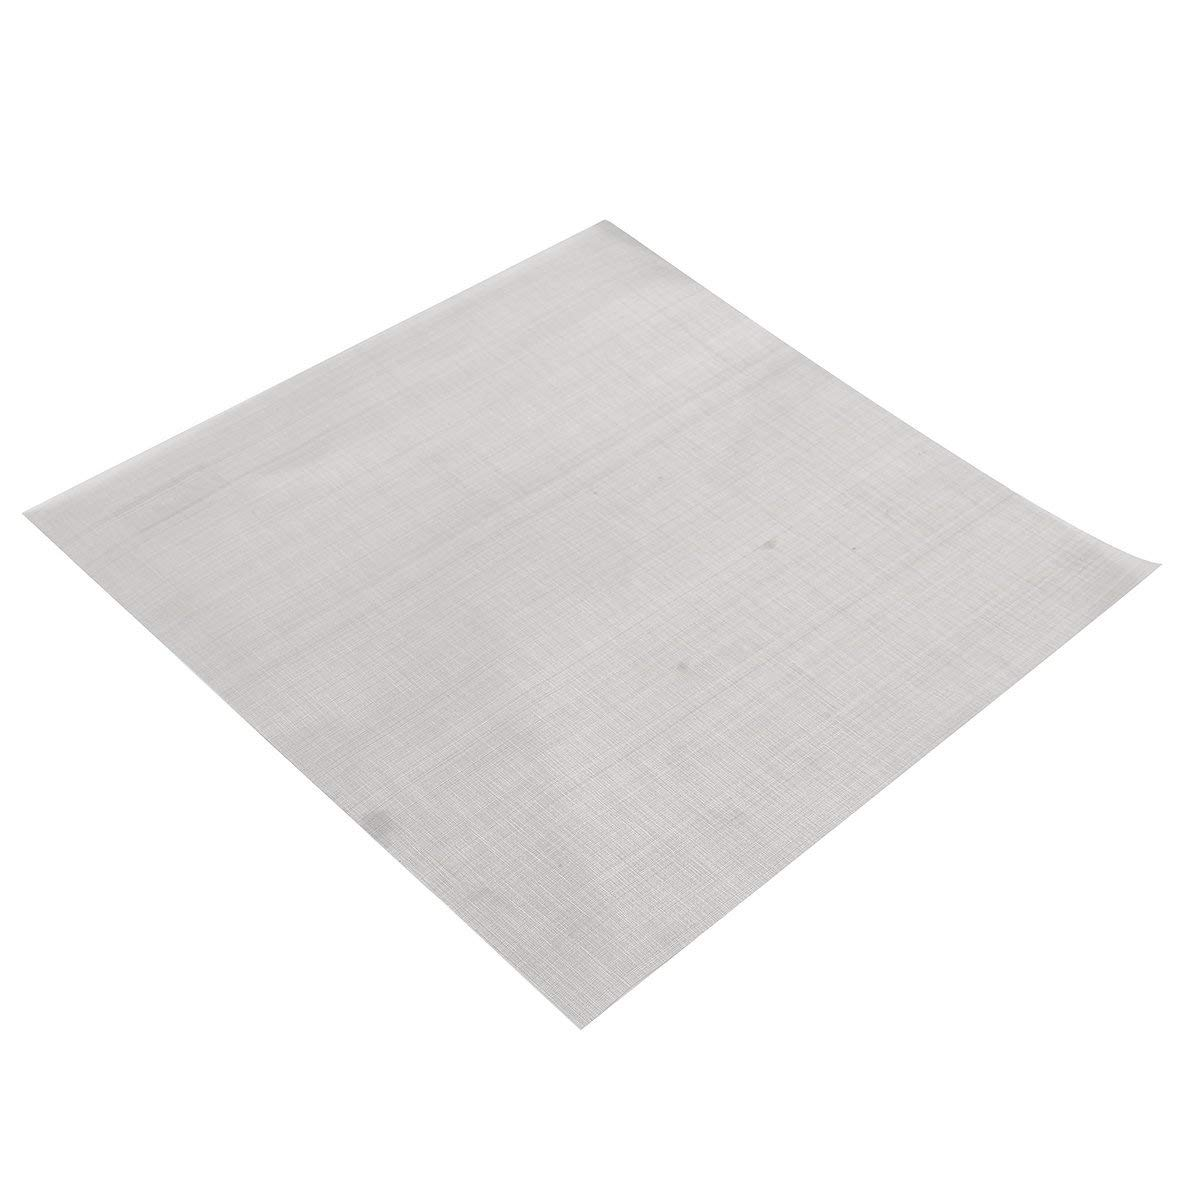 25.4x25.4cm Woven Wire 304 Stainless Steel Filtration Grill Sheet Filter 100 - Raw Materials Mesh & Wire Cloth - 1 x 40T Brush Cutter Blade